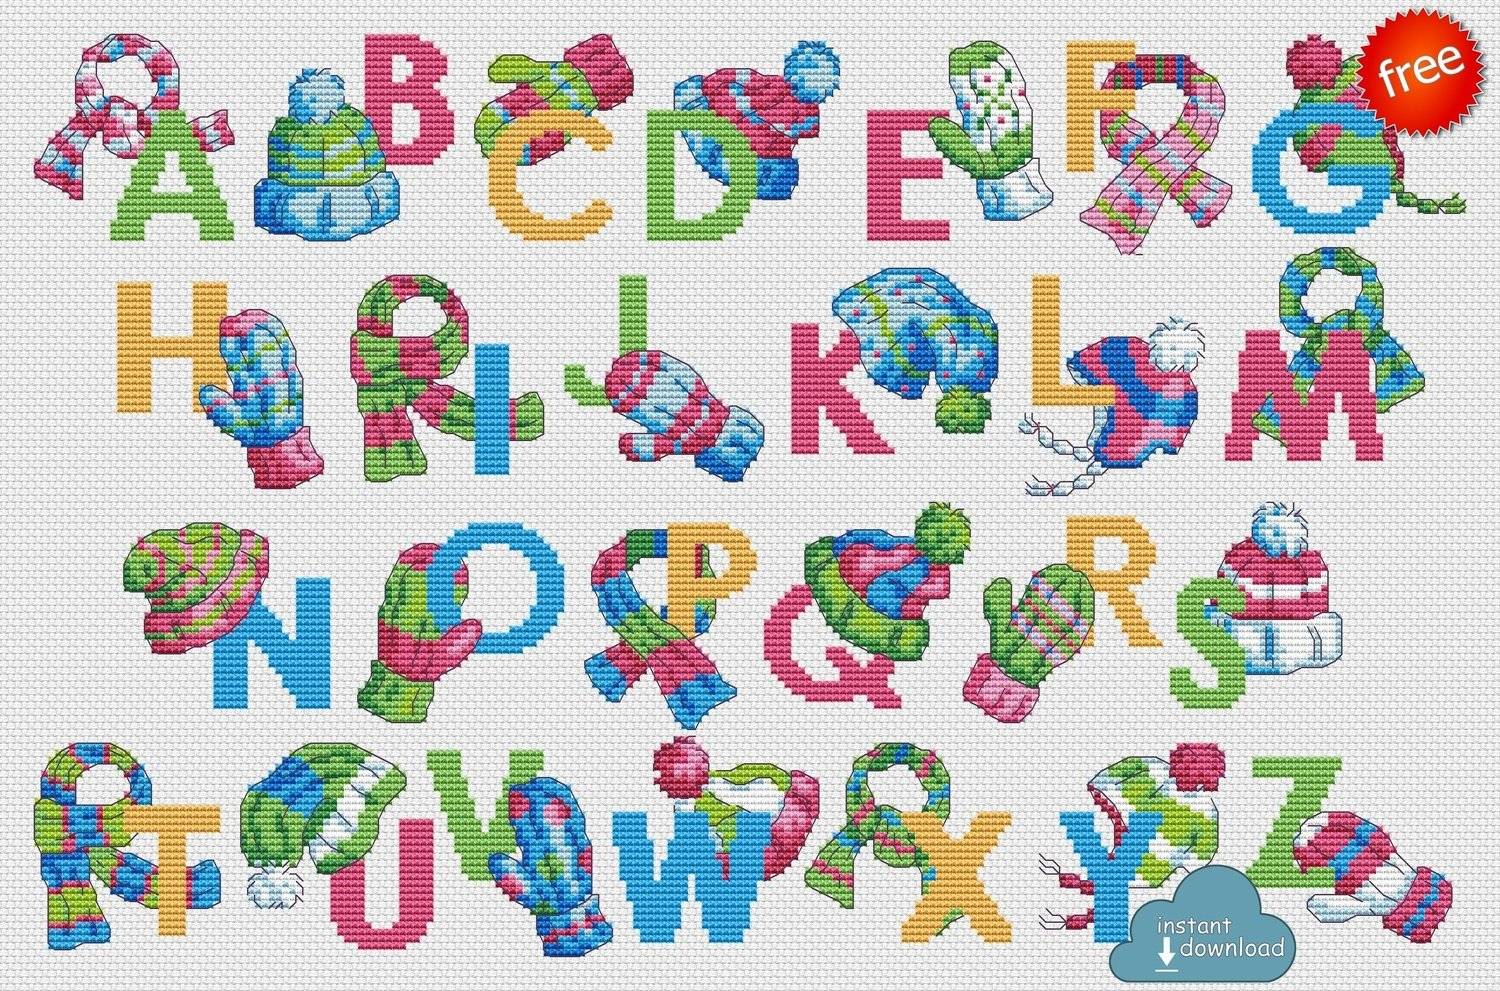 Winter Woolies ABC Cross Stitch Pattern PDF + XSD. Winter ABC Cross Stitch Chart PDF. Instant Download. Free